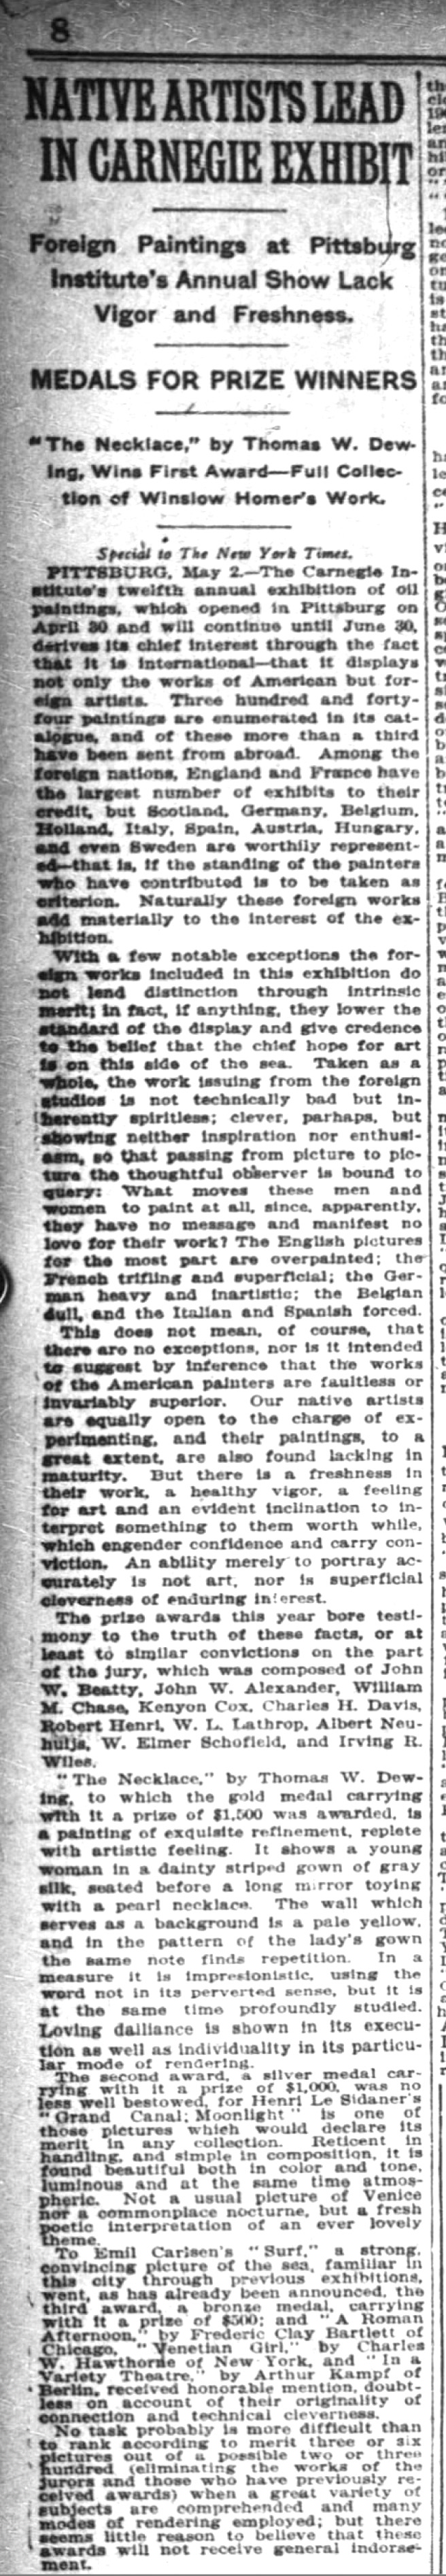 "New York Times, New York, NY, ""Native artists lead in Carnegie exhibit"", Sunday, May 3, 1908, page 8, not illustrated"